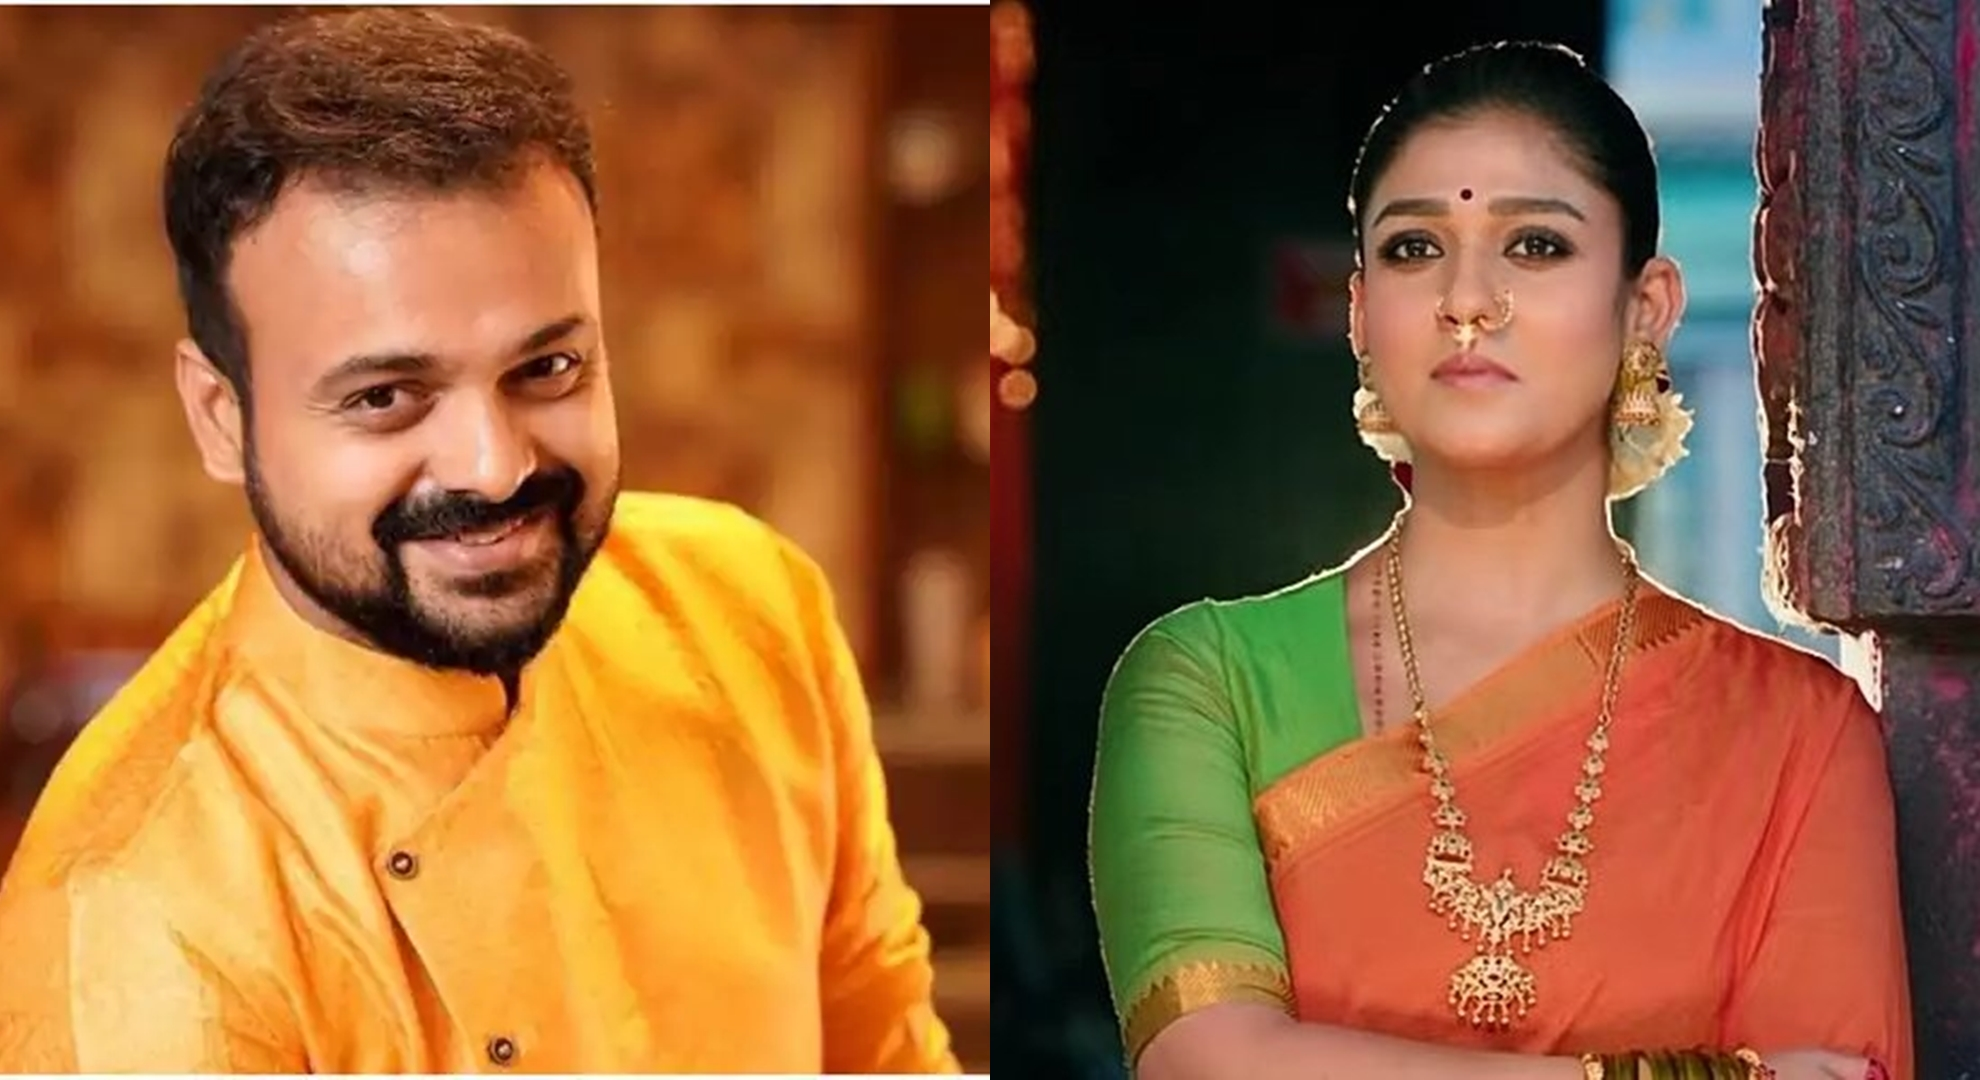 Nayanthara to pair with Kunchacko Boban for her next project